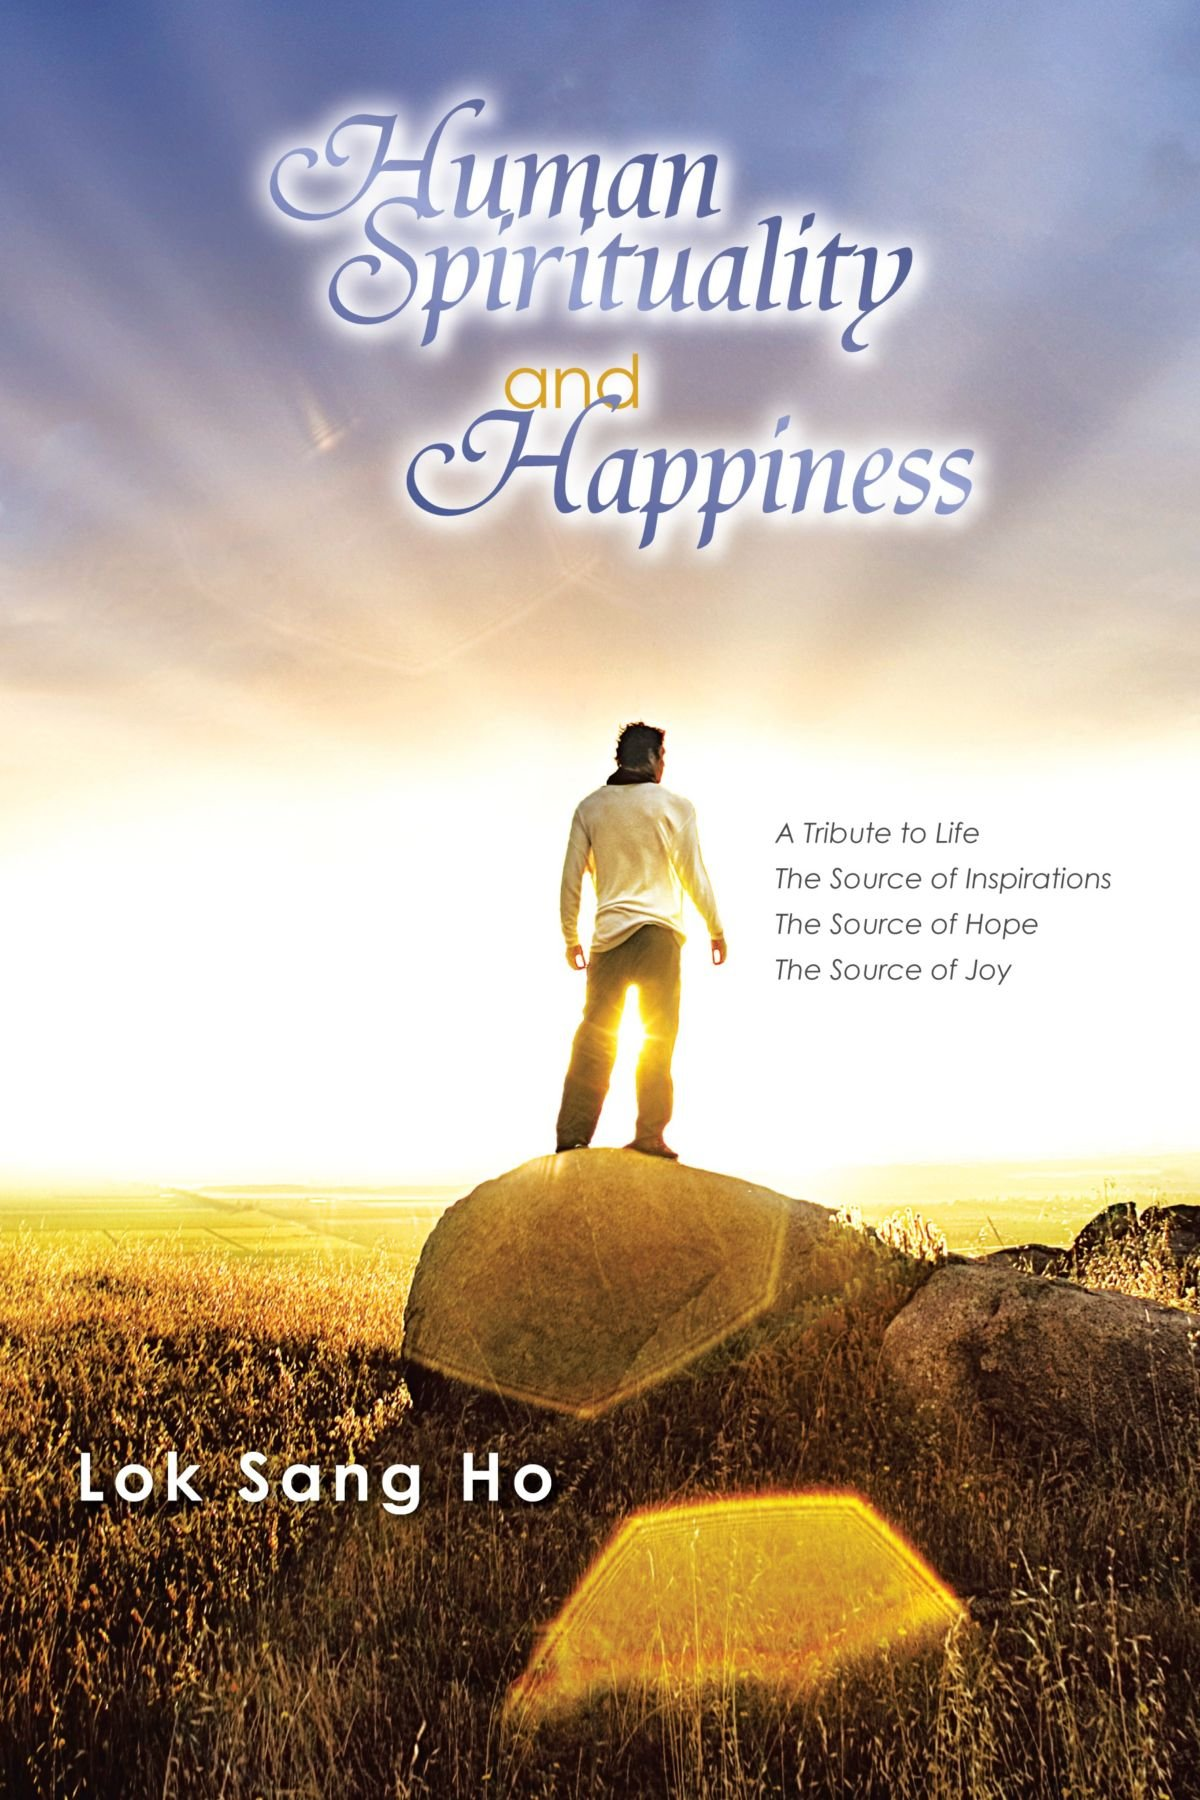 Human Spirituality And Happiness: A Tribute to Life The Source of